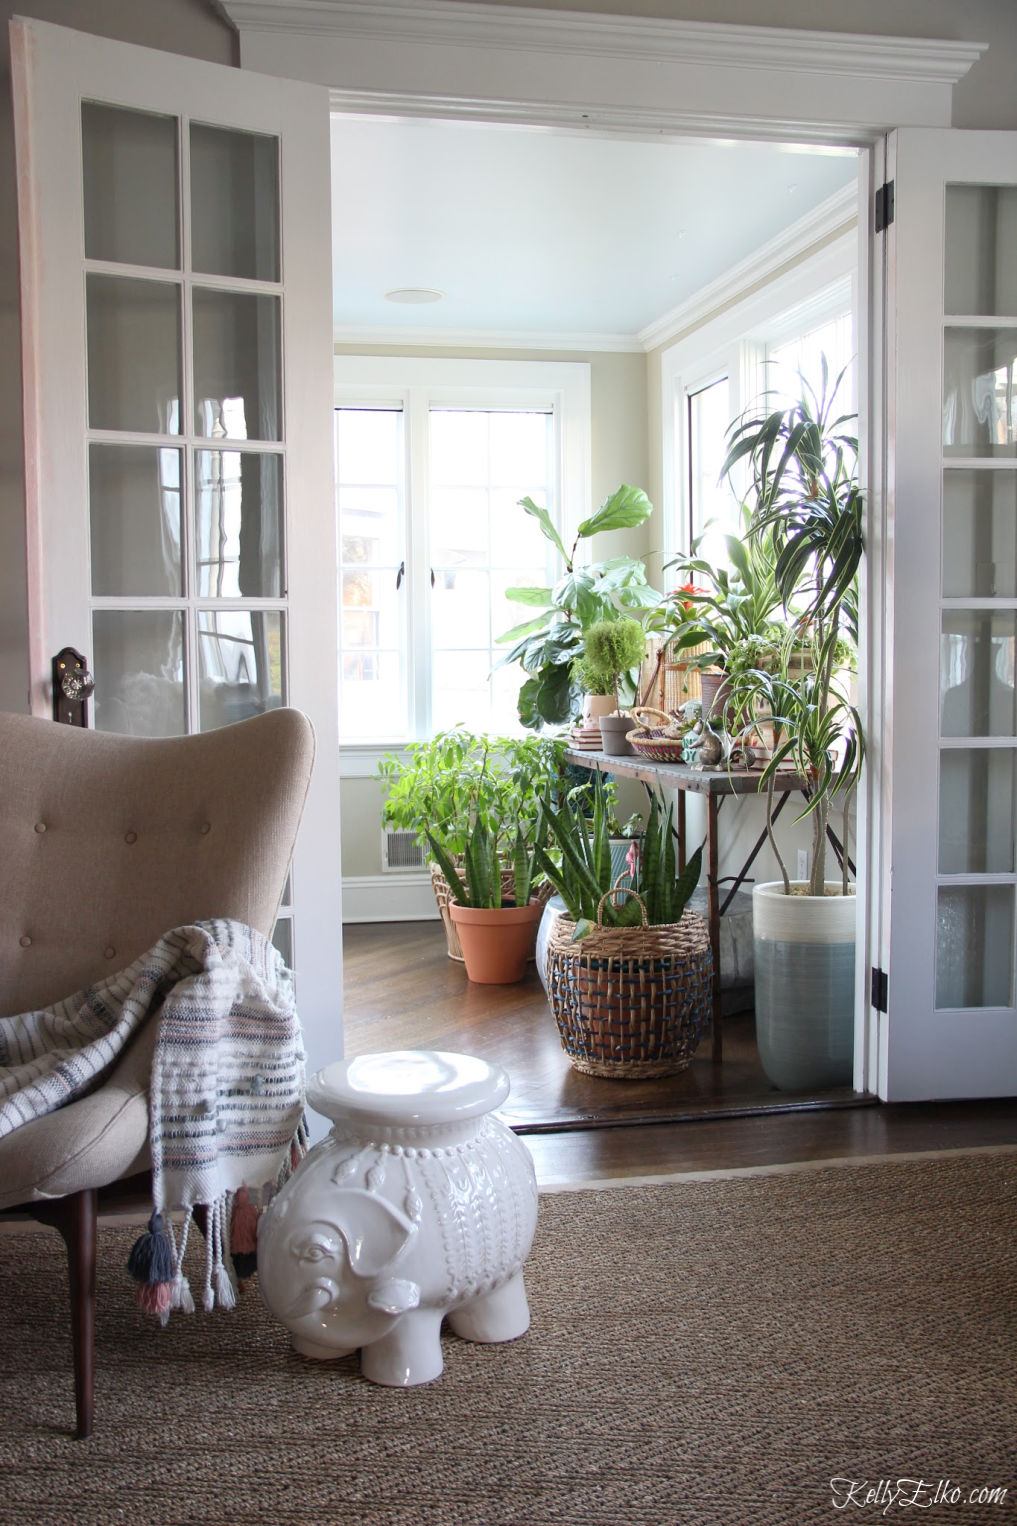 This sunroom is filled with beautiful plants! kellyelko.com #plants #planter #sunroom #sunroomdecor #houseplants #jungalow #eclecticdecor